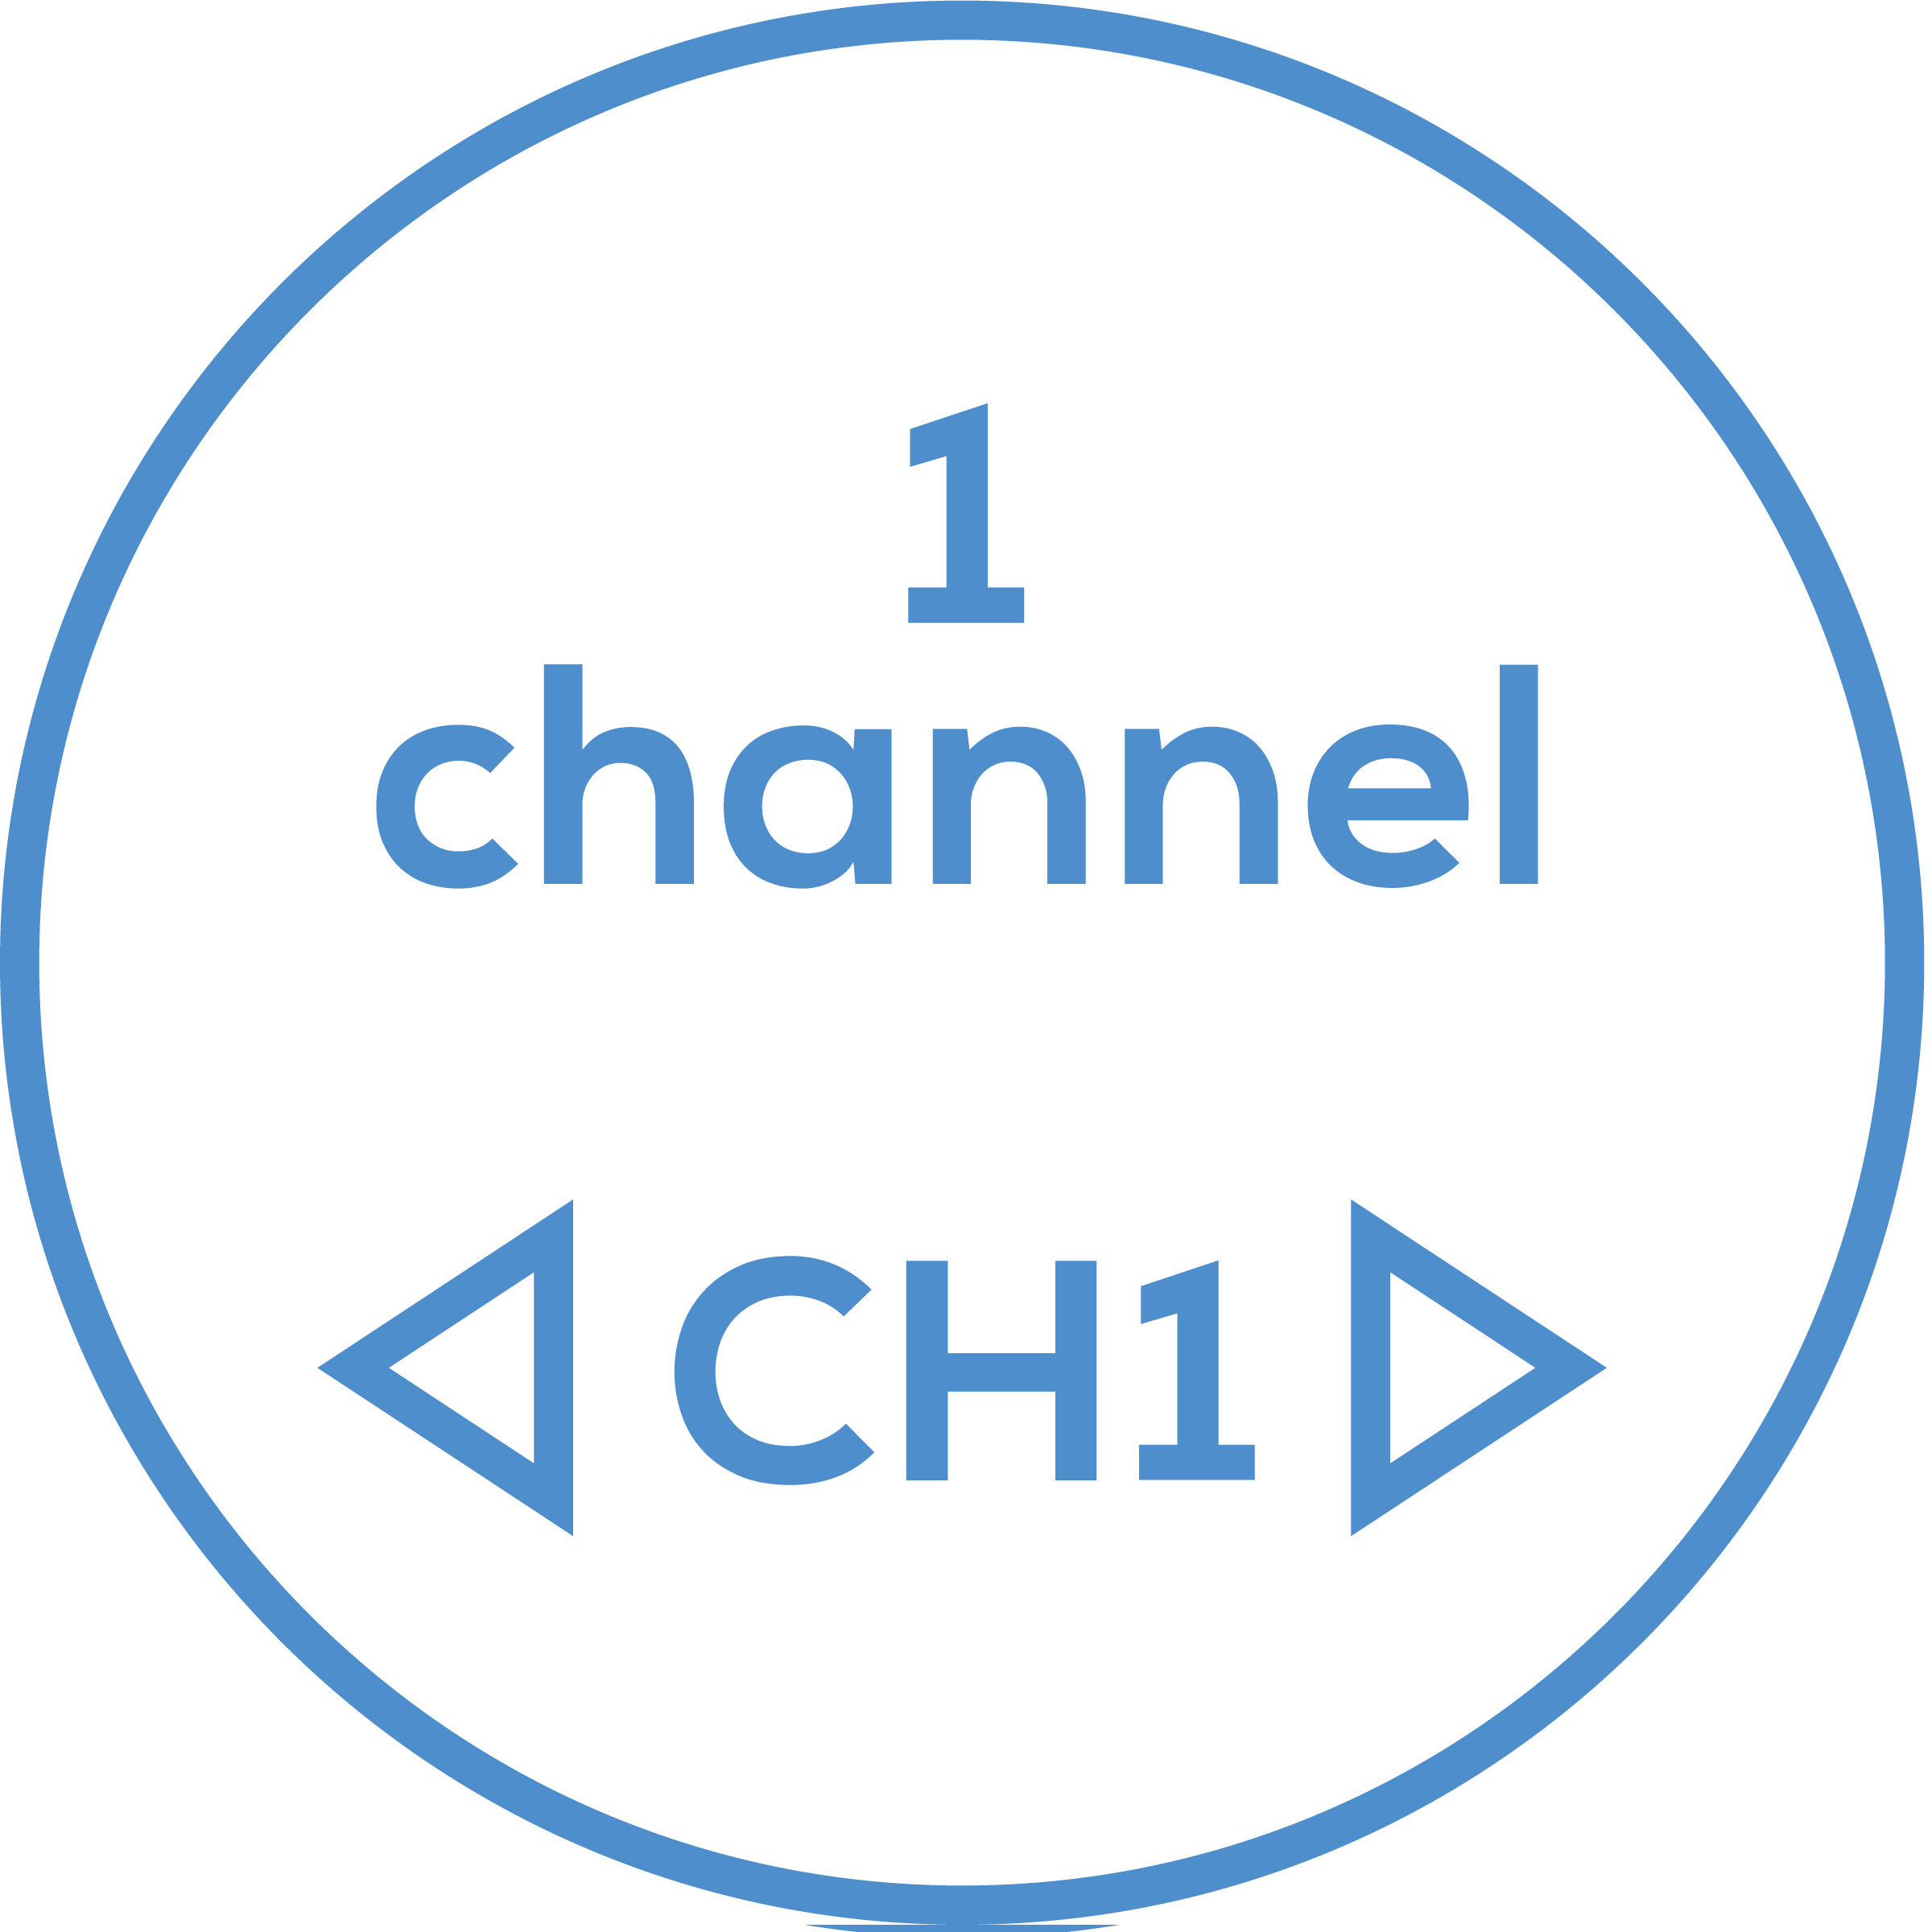 Channel The device has one adjustable channel